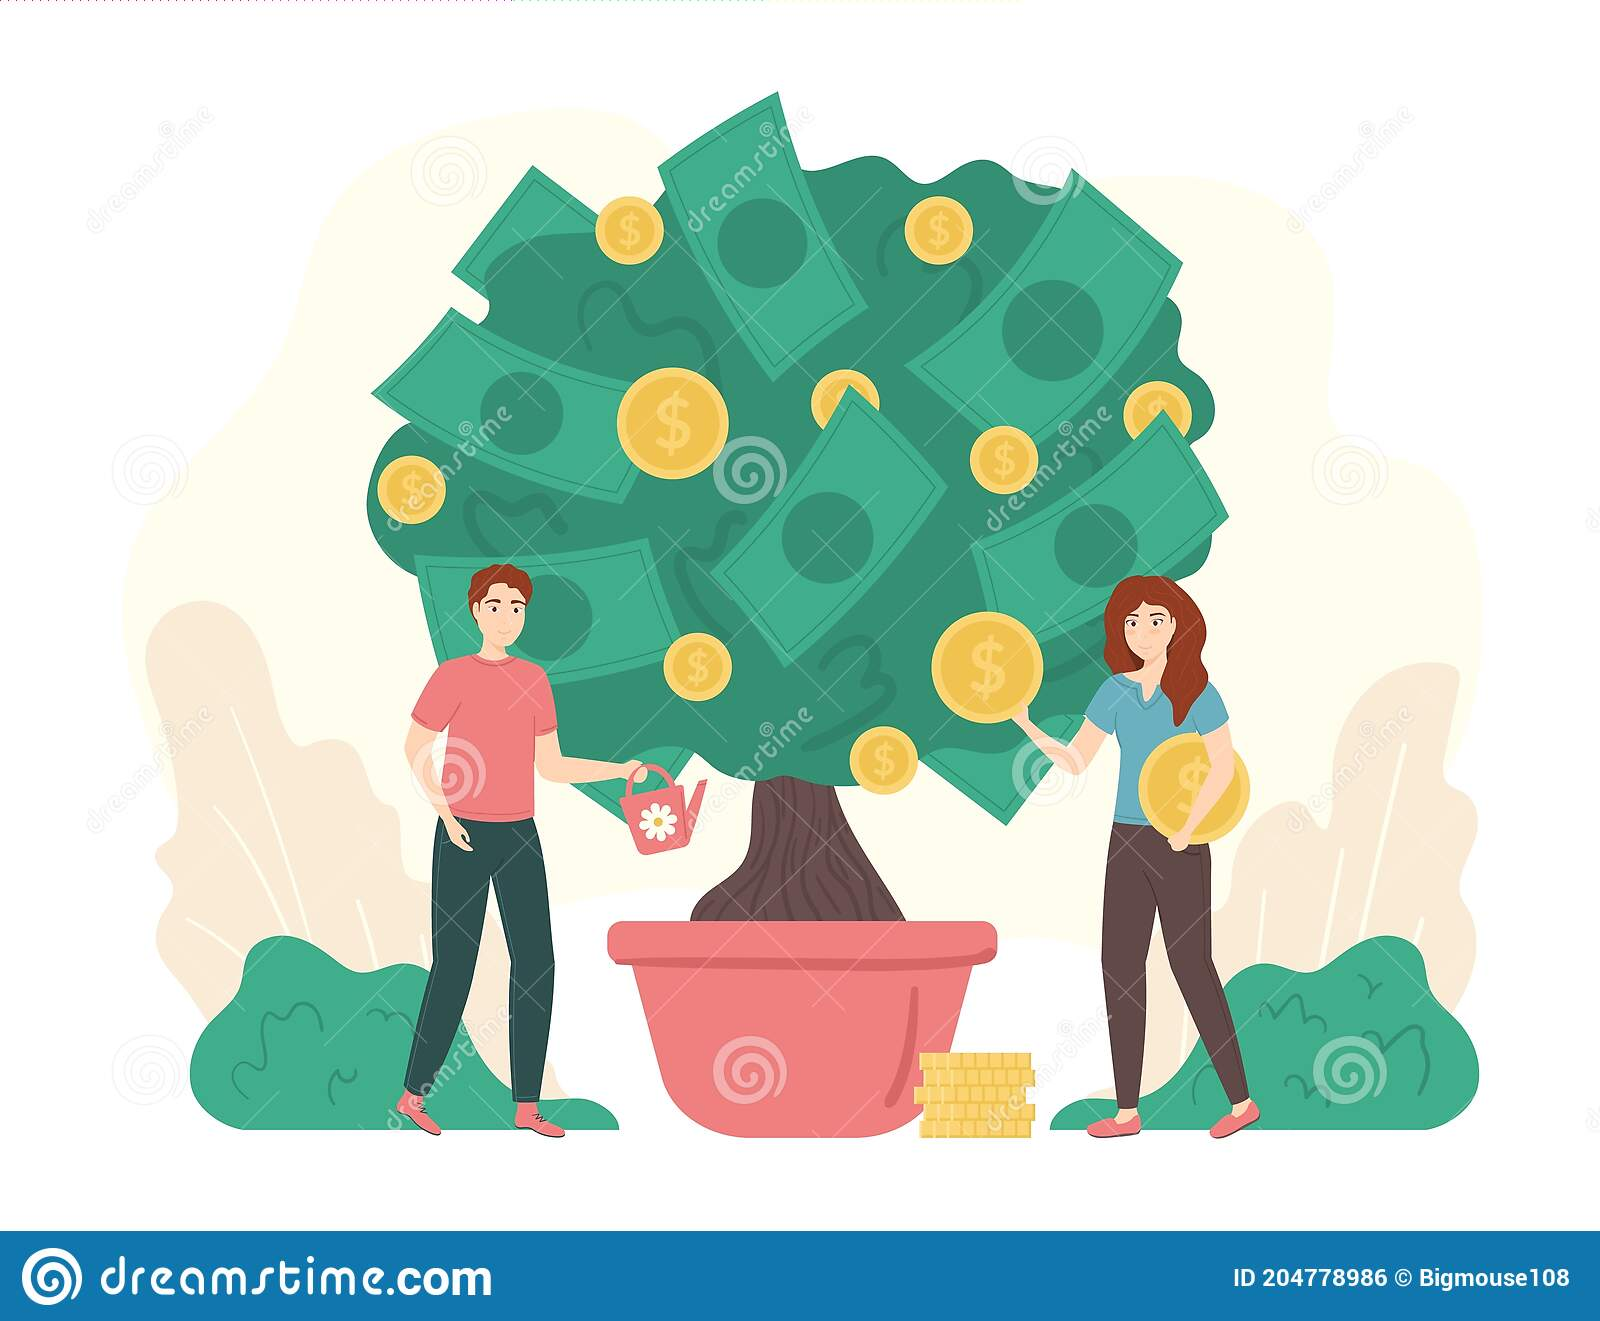 Vy9cdcrd6 Mpvm Are you searching for cartoon tree png images or vector? 2